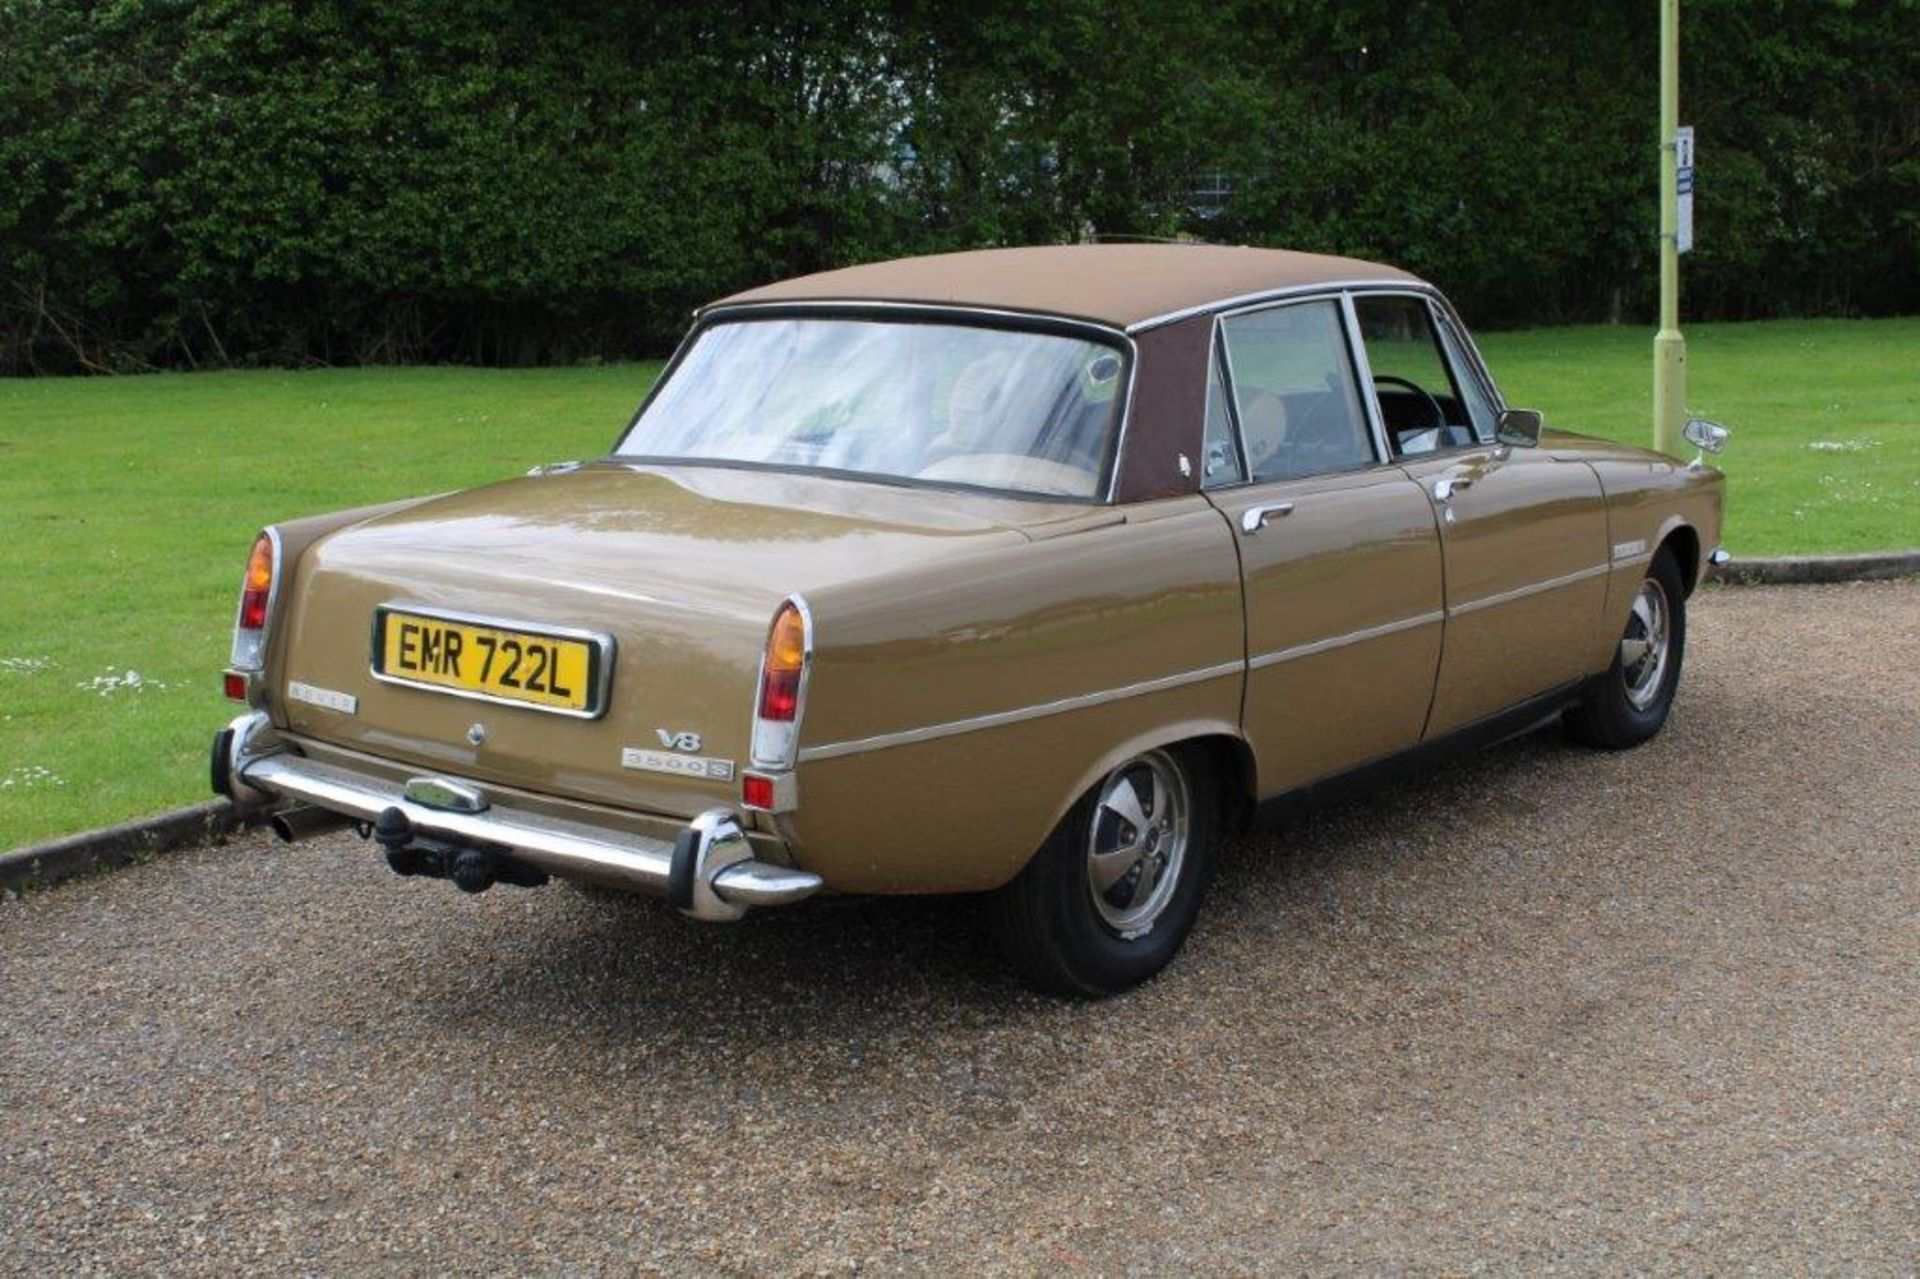 1970 Rover P6 3500 S 1 of 6 development cars - Image 8 of 21